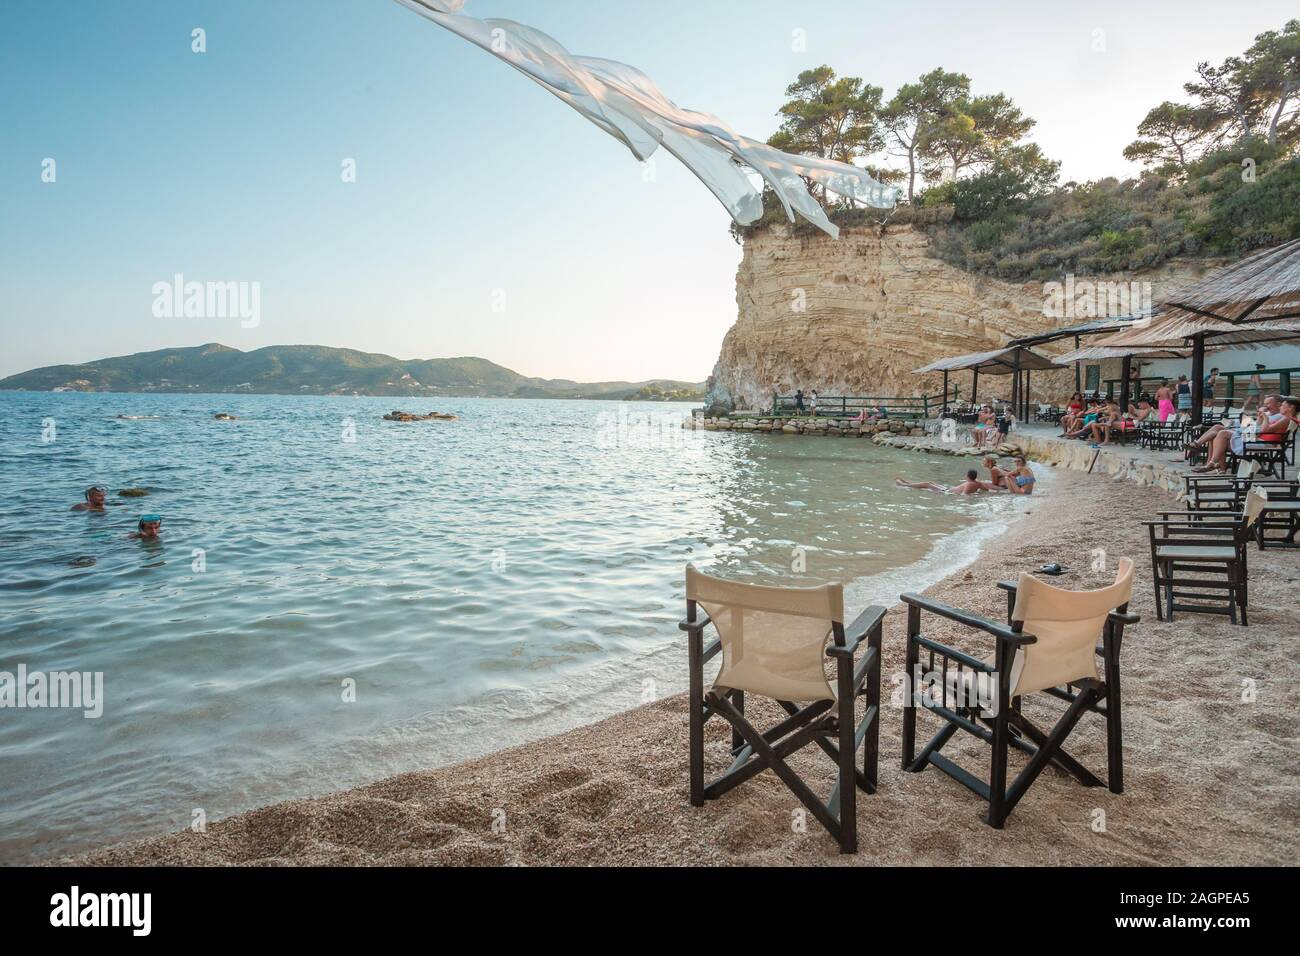 Cameo Island, Greece, August 2019, Cameo Island, private island off the shore of Laganas, Zakynthos with romantic, rope with white sheets. Famous Stock Photo